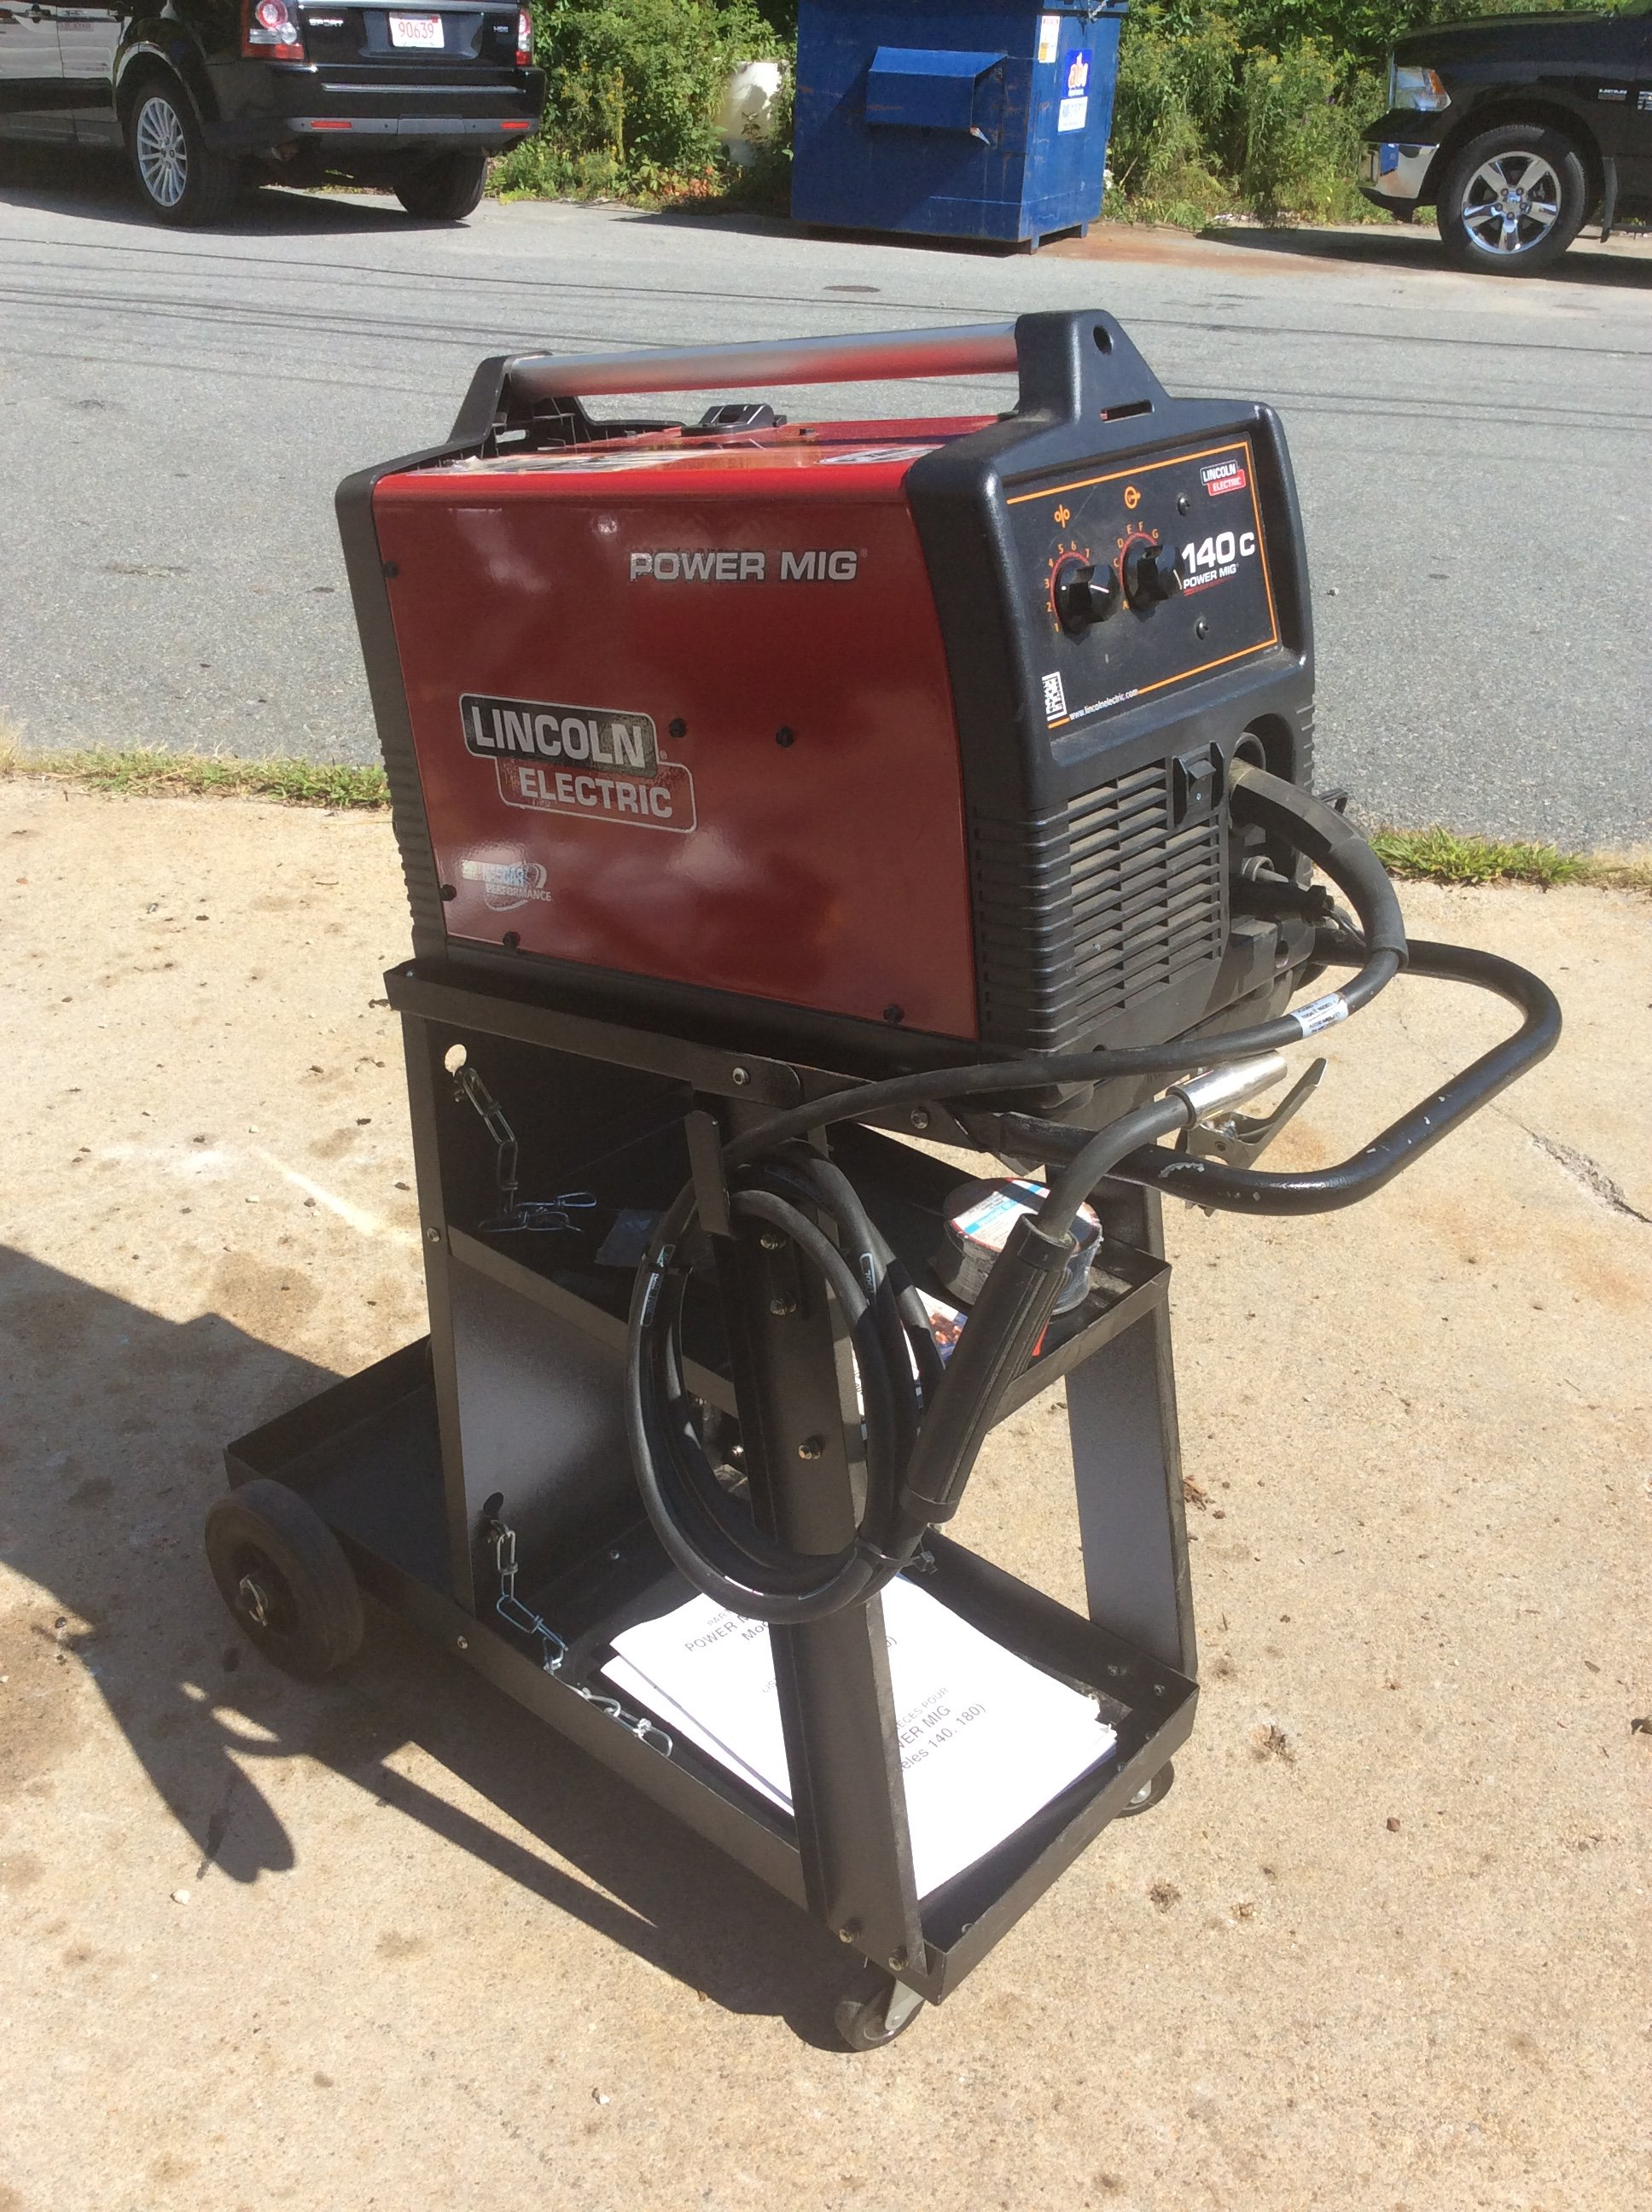 Lincoln 140c Welder Parts Mig Electric Power Kit With Cart Excellent Condition Lightly Used 1936x2592